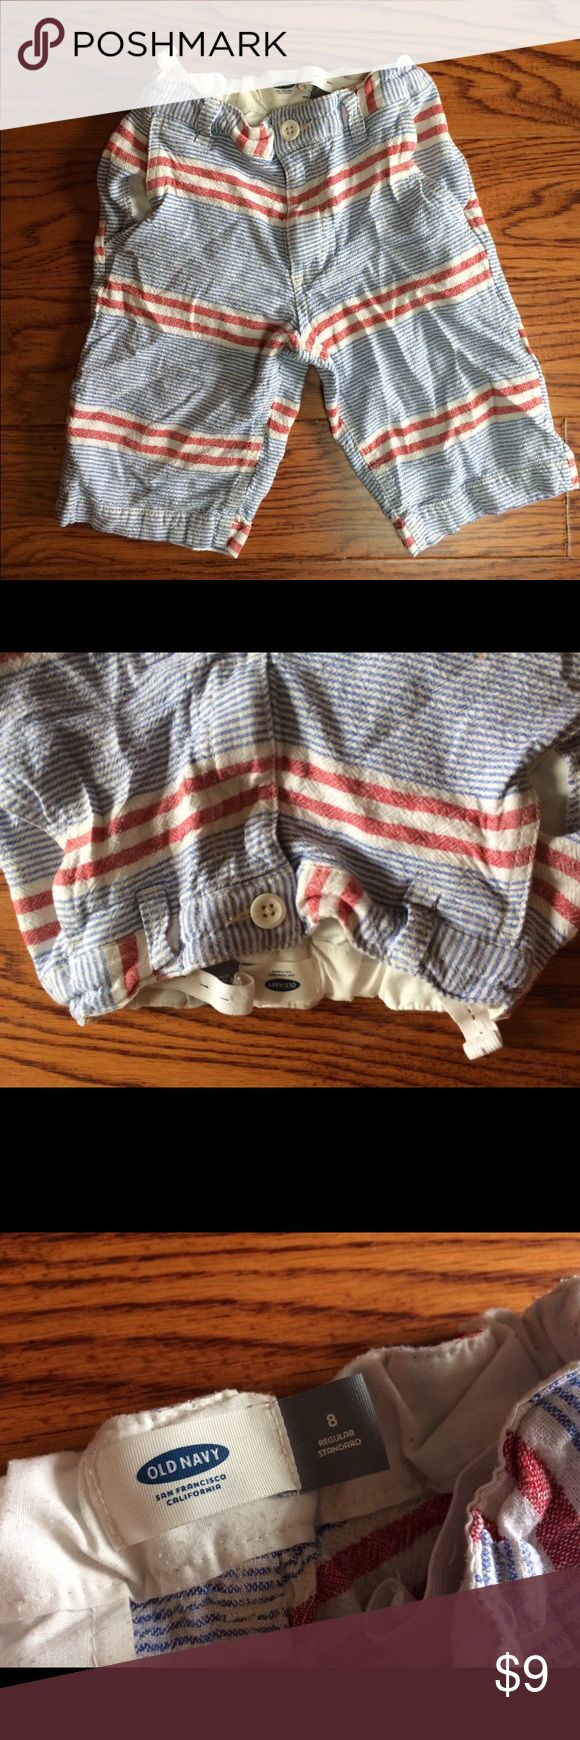 Old Navy shorts boys size 8 GUC Smoke and pet free home. Bundle discount 20% Old Navy Bottoms Shorts